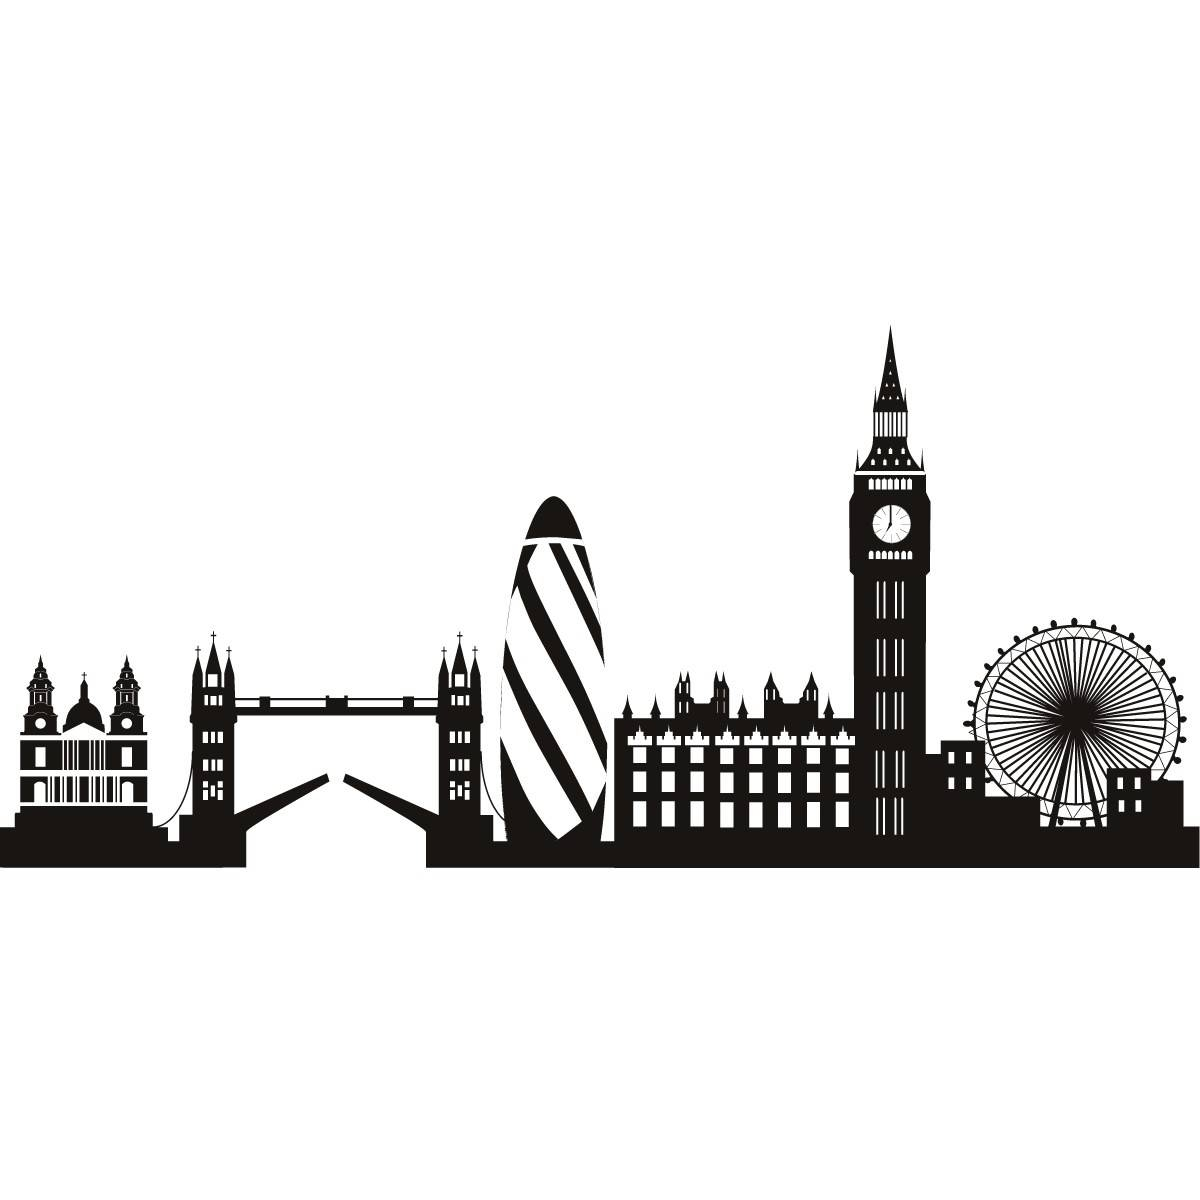 Mesmerizing London Wall Art Ebay Removable Vinyl Wall Stickers For Most Up To Date London Scene Wall Art (View 14 of 20)